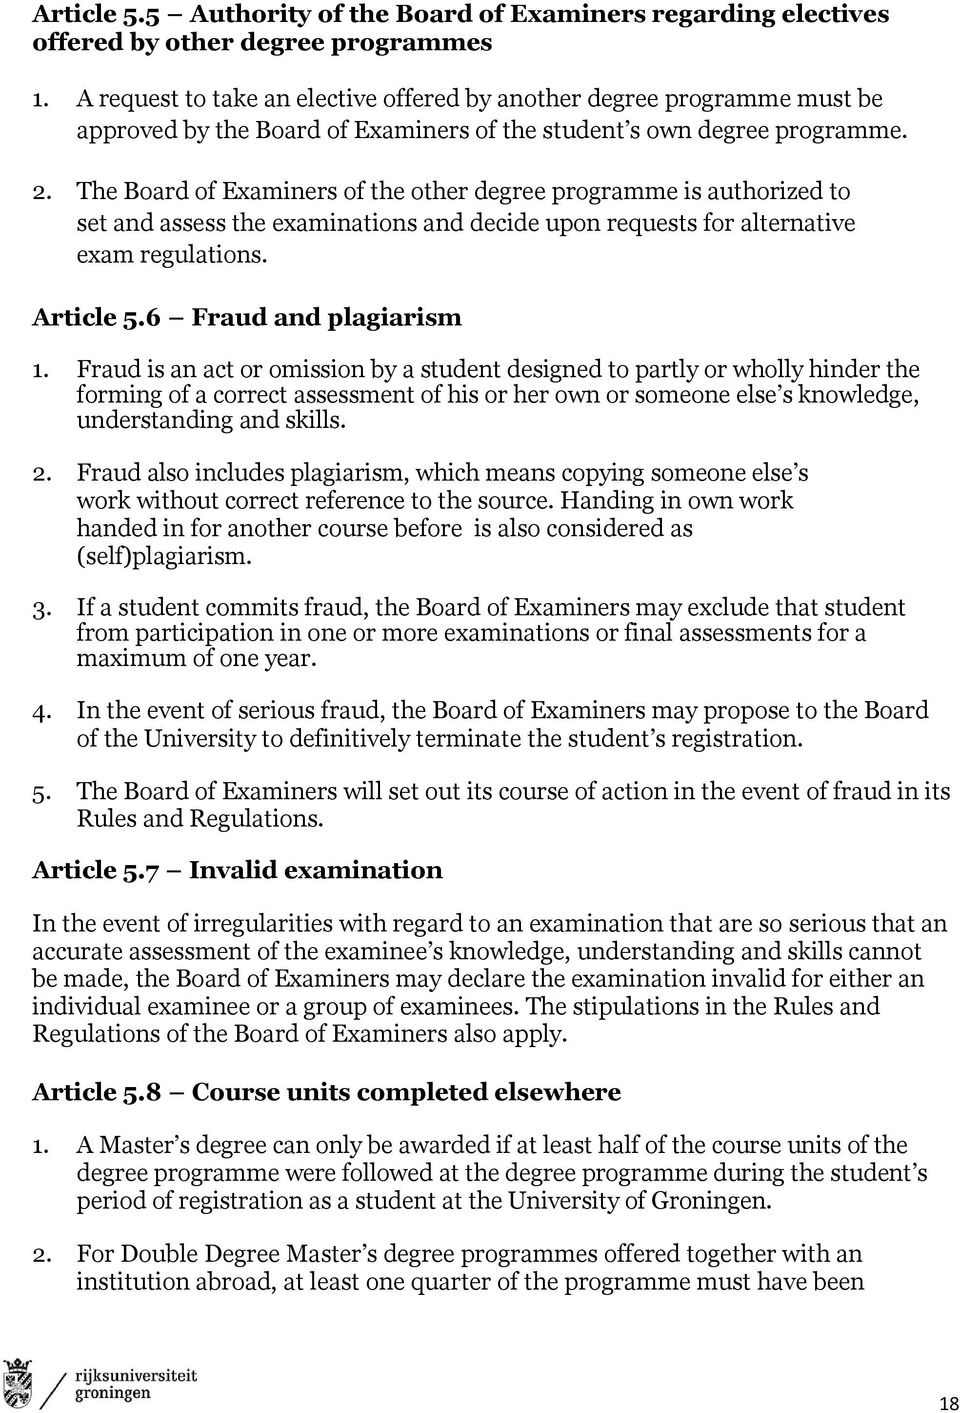 The Board of Examiners of the other degree programme is authorized to set and assess the examinations and decide upon requests for alternative exam regulations. Article 5.6 Fraud and plagiarism 1.